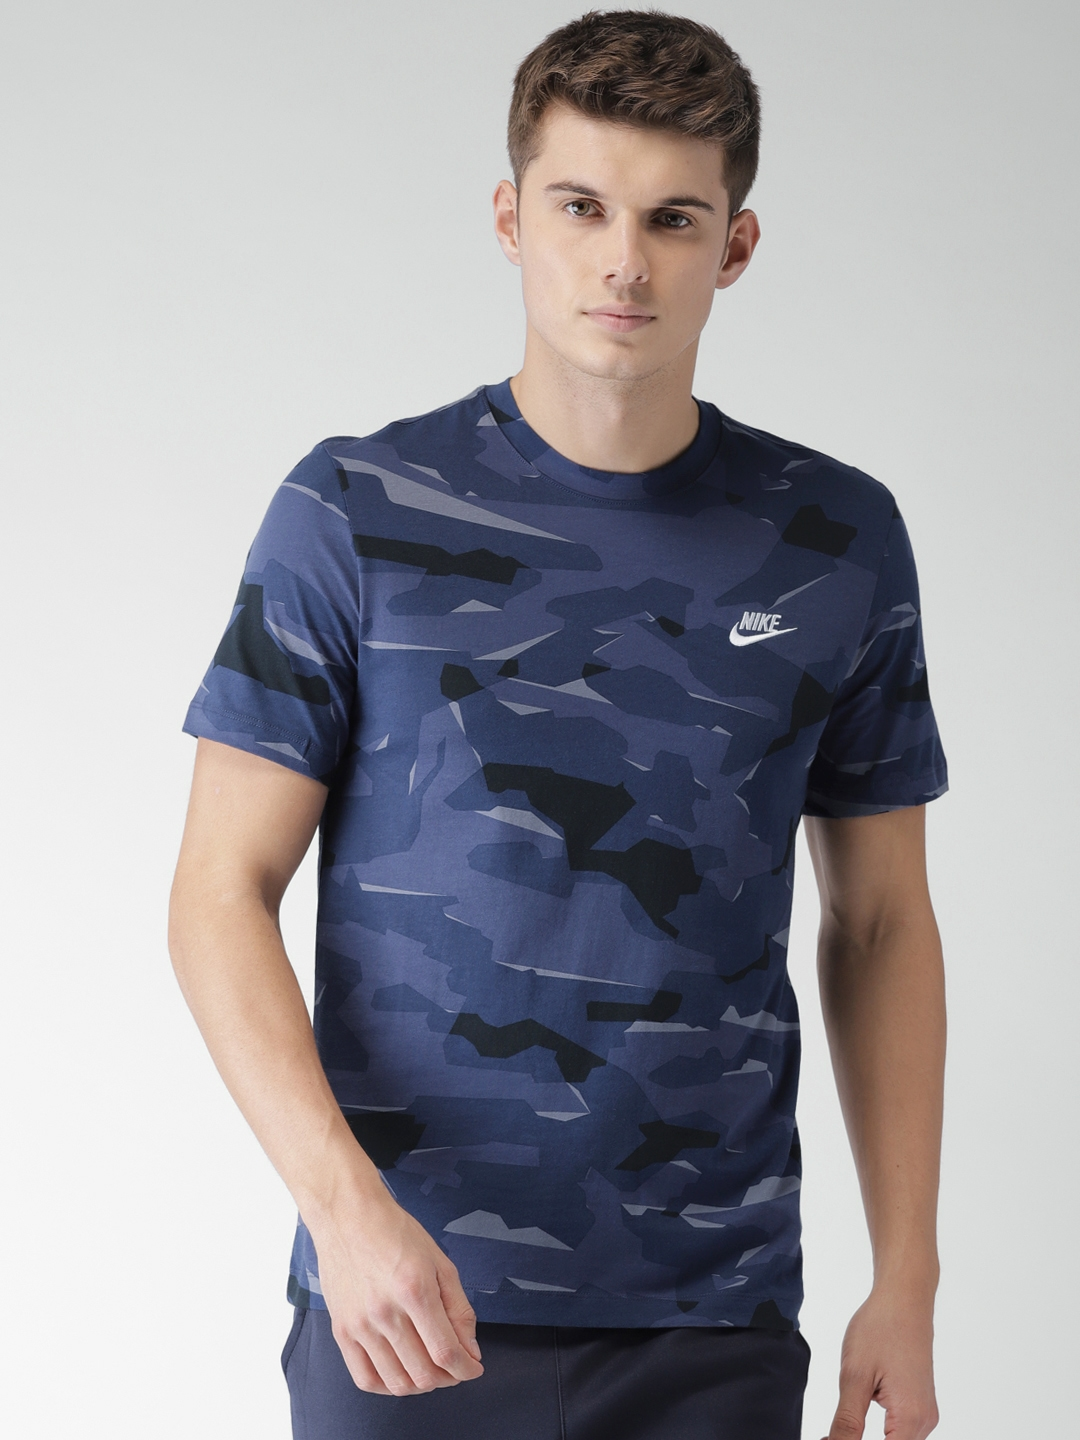 1ddd0cb54 Buy Nike Men Blue & Black Camouflage Printed NSW DRI FIT T Shirt ...